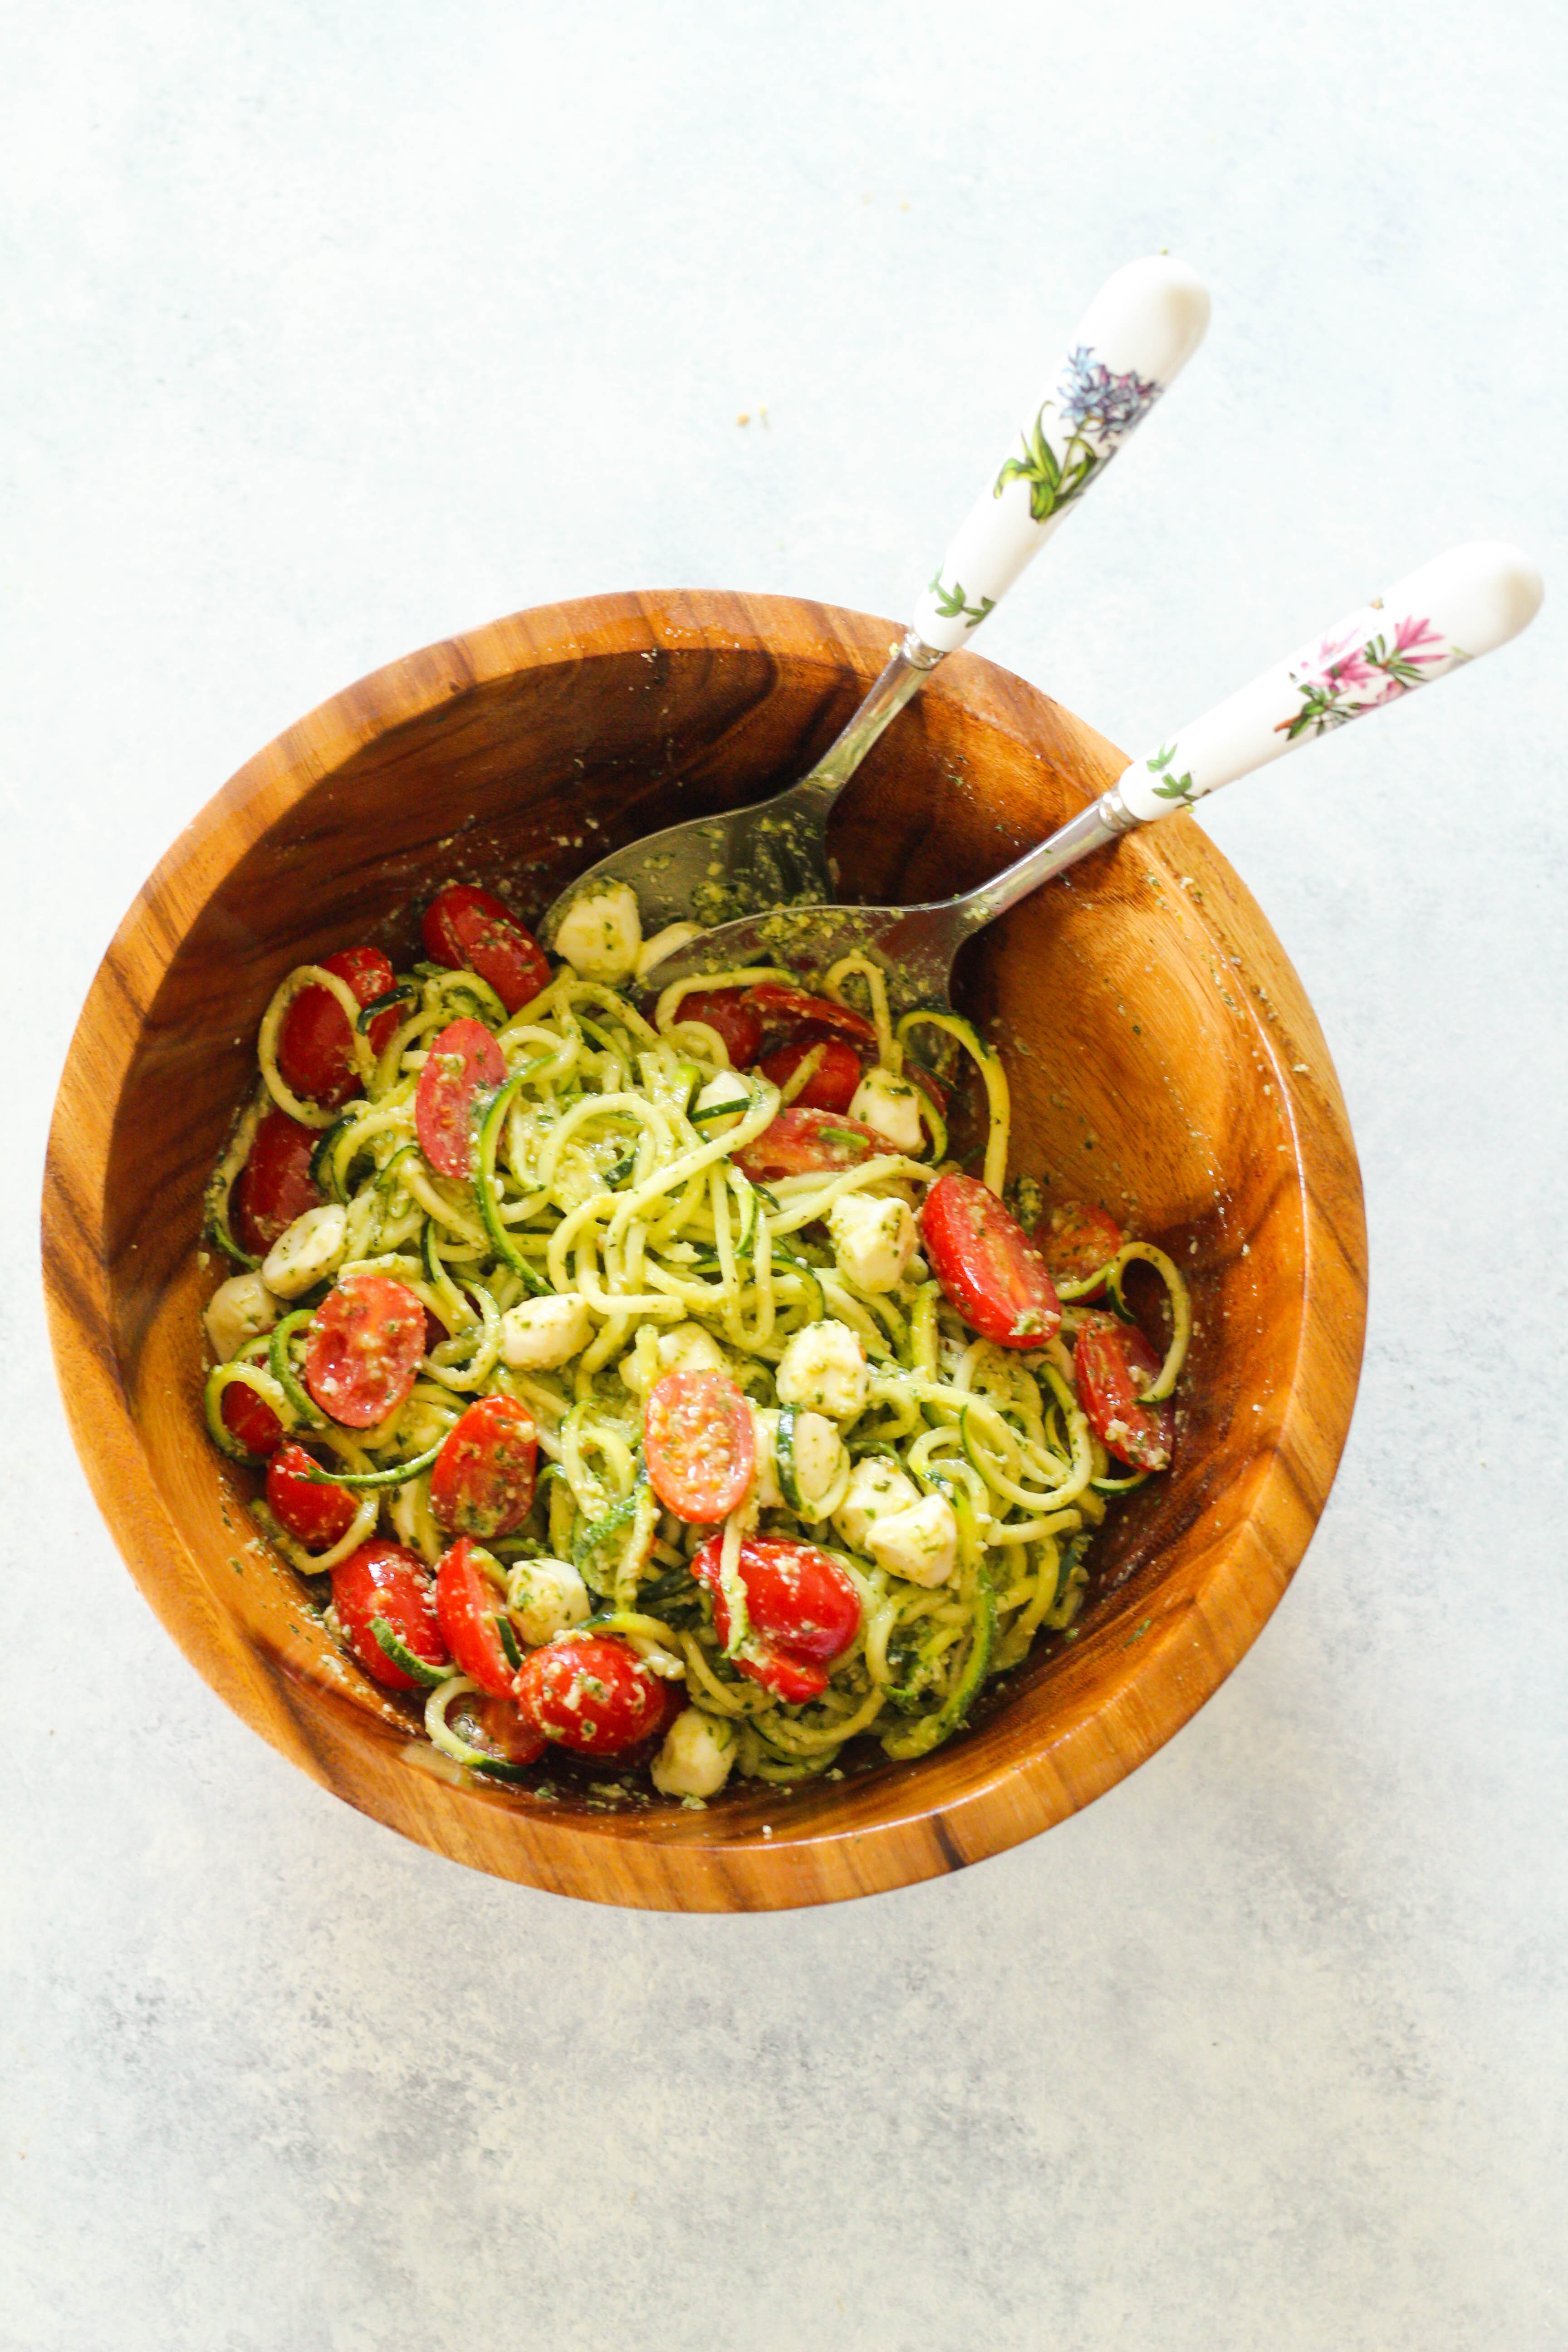 These Pesto Zucchini Noodles are a light and summery dish that doesn't require a stove top or oven! Simply whip together a fresh basil pesto and toss zucchini noodles with cherry tomatoes and mozzarella pearls.